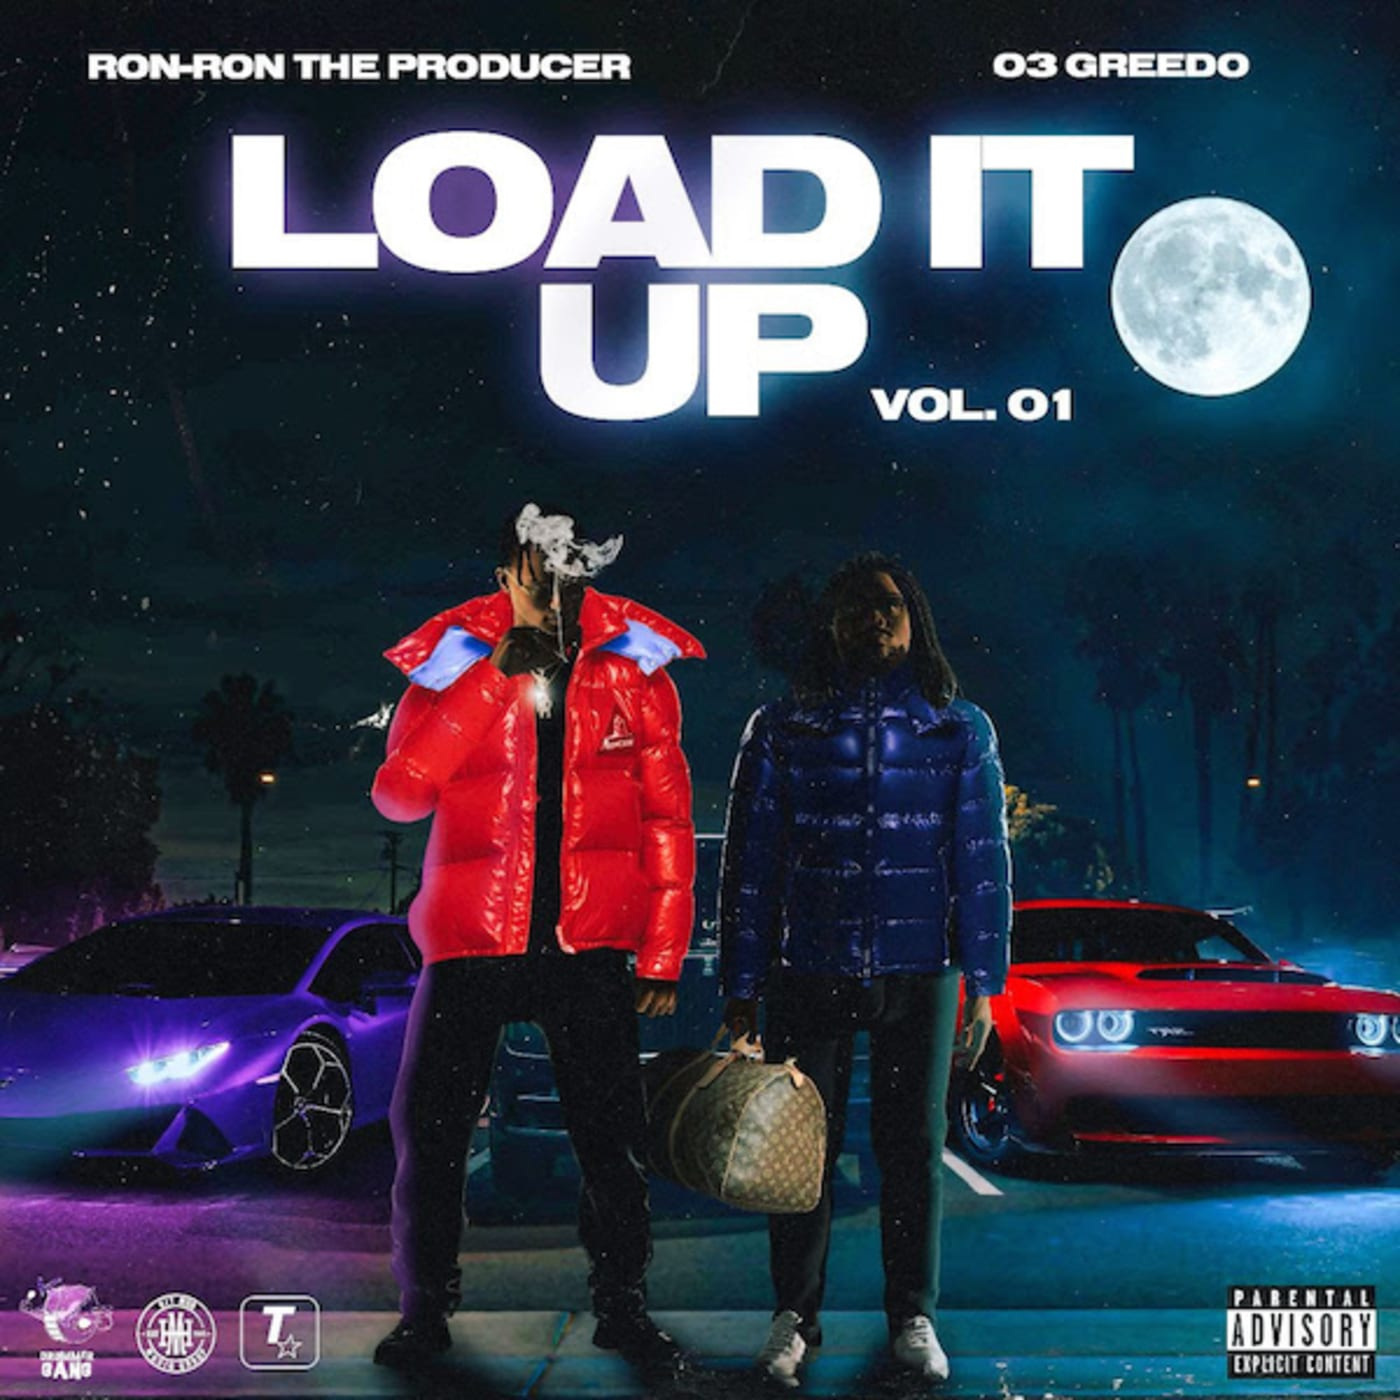 'Load It Up Vol. 01,' Prod. by Ron Rontheproducer